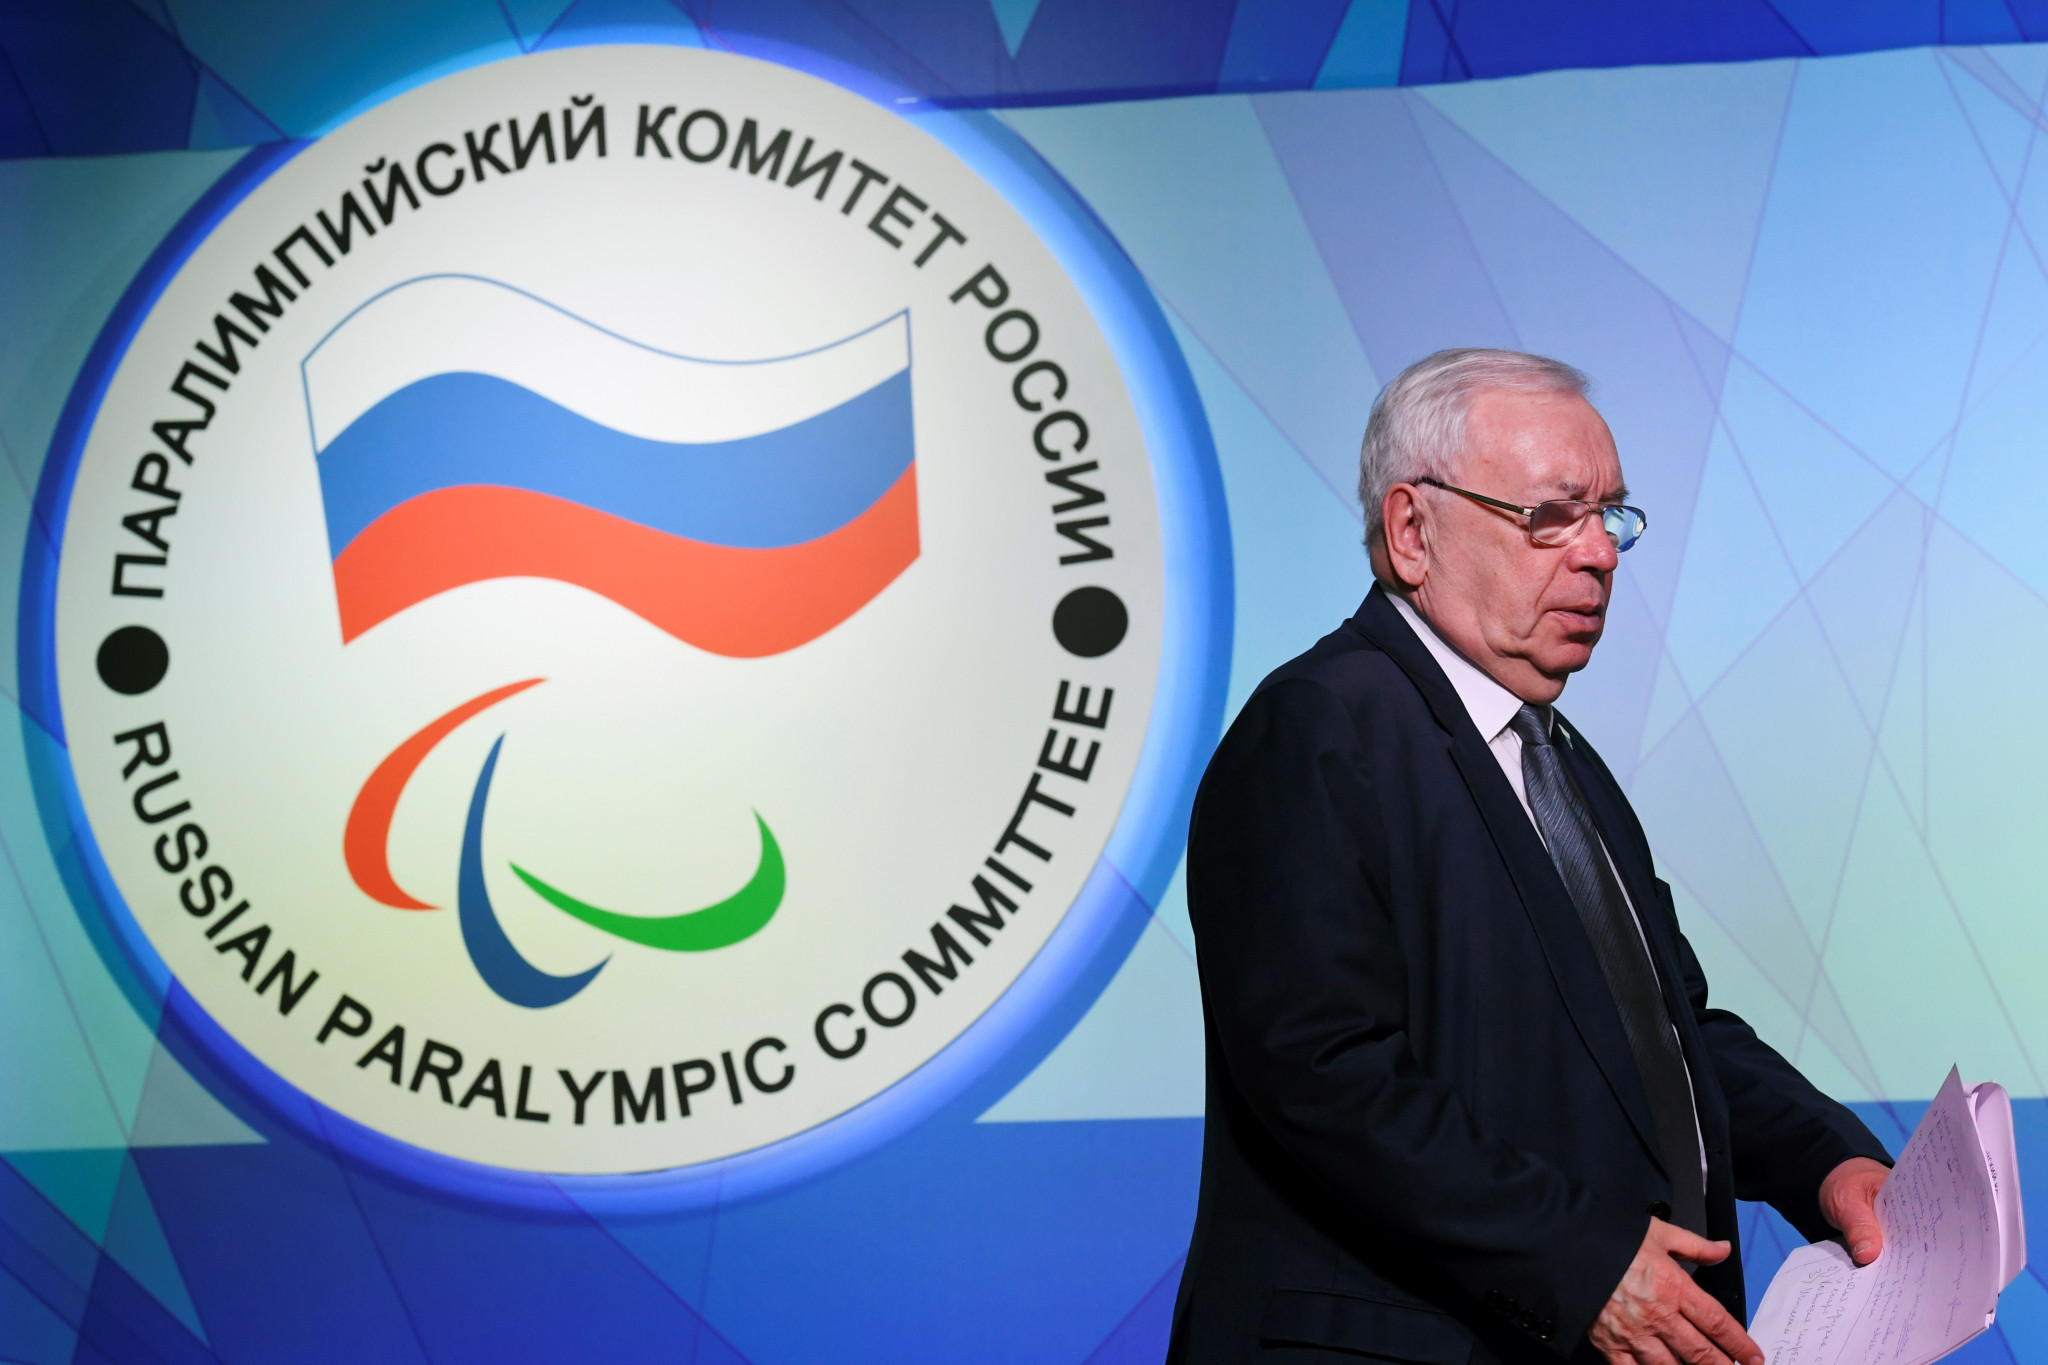 The Russian Paralympic Committee remains suspended by the International Paralympic Committee ©Getty Images